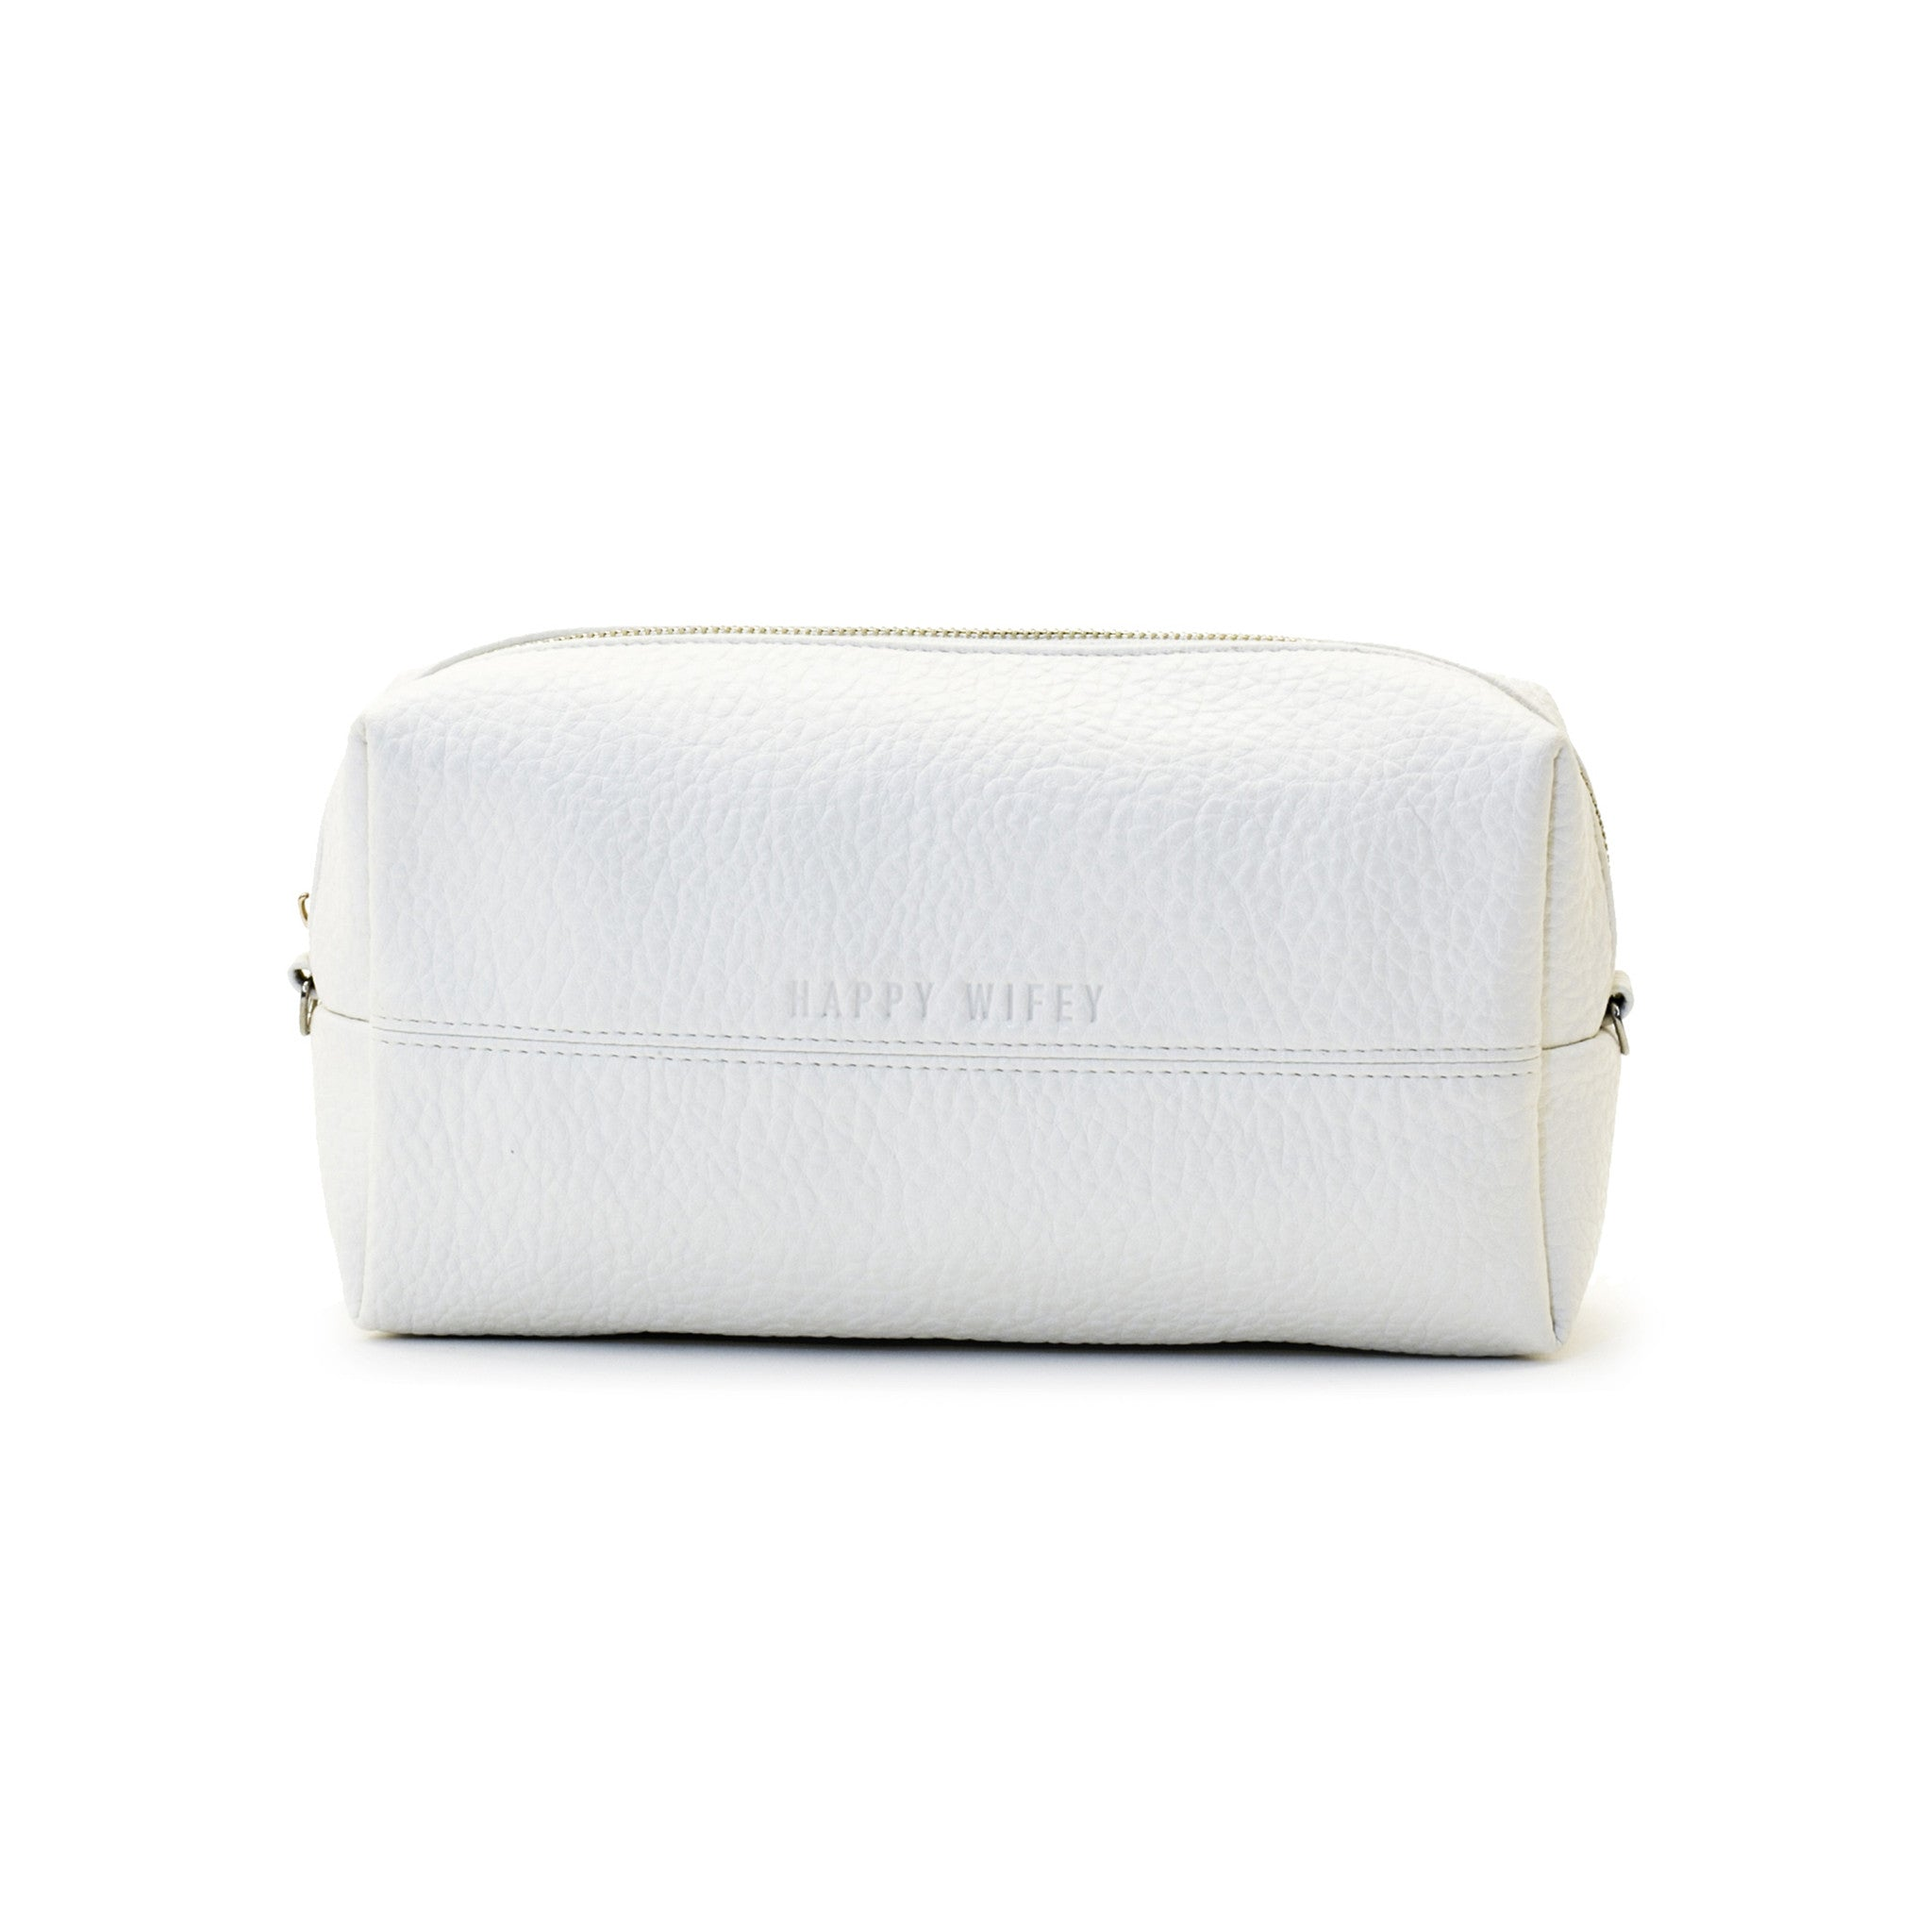 Medium Makeup Bag - Happy Wifey